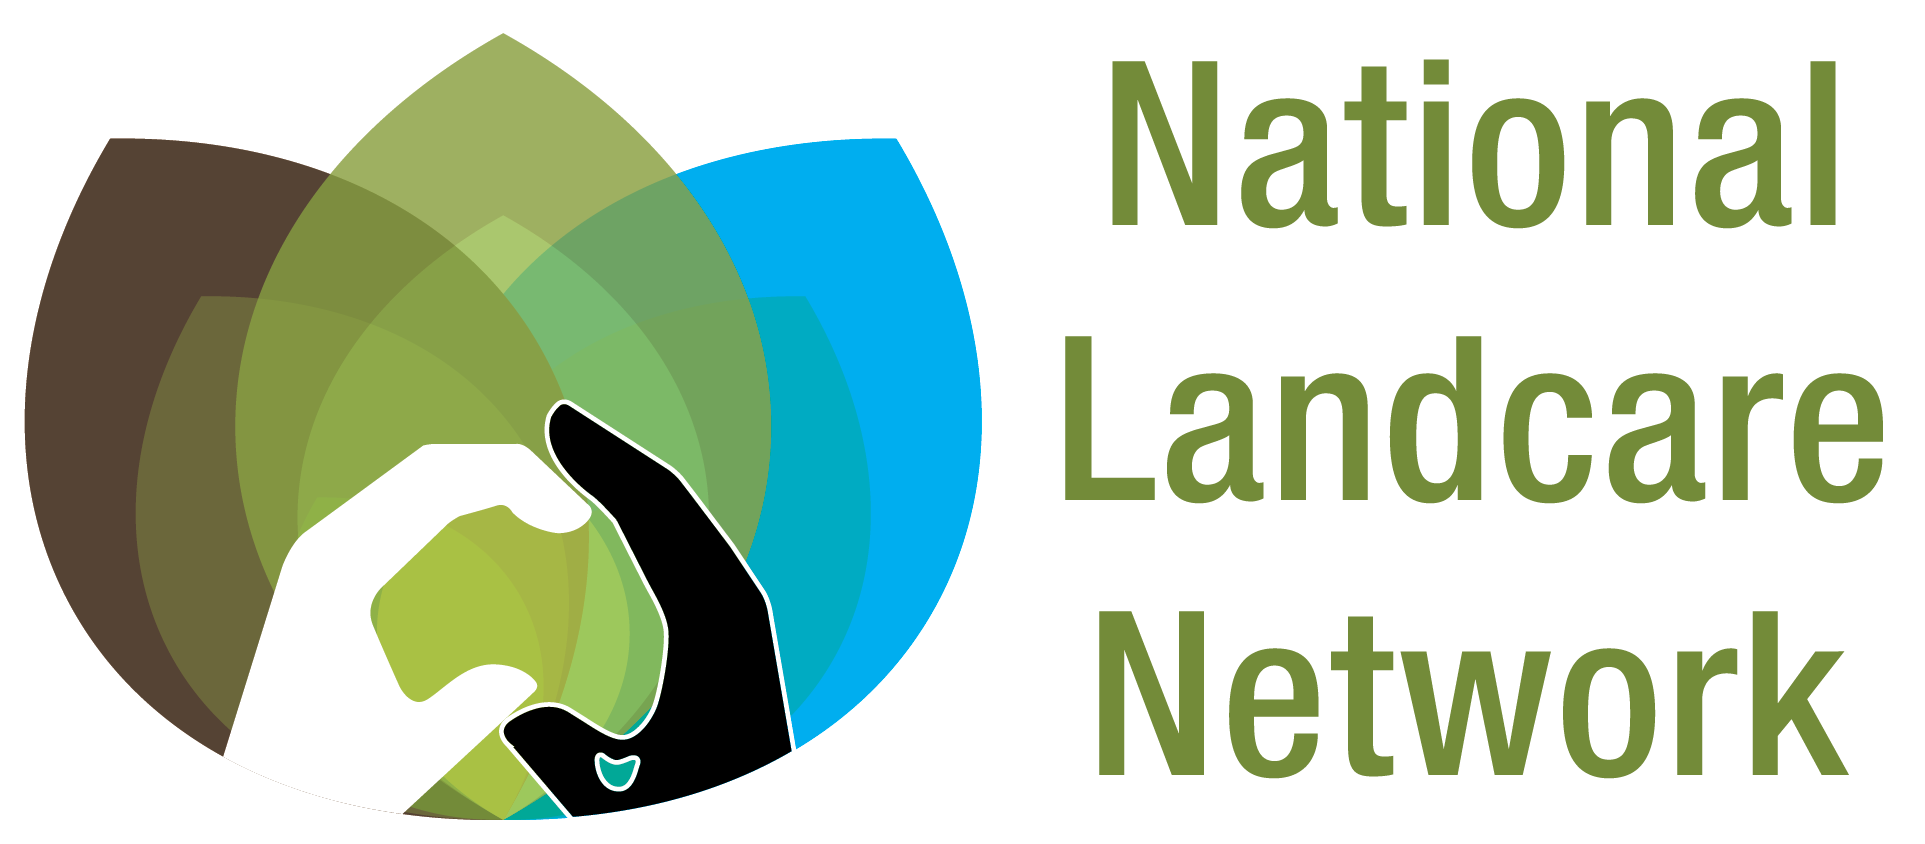 National Landcare Network